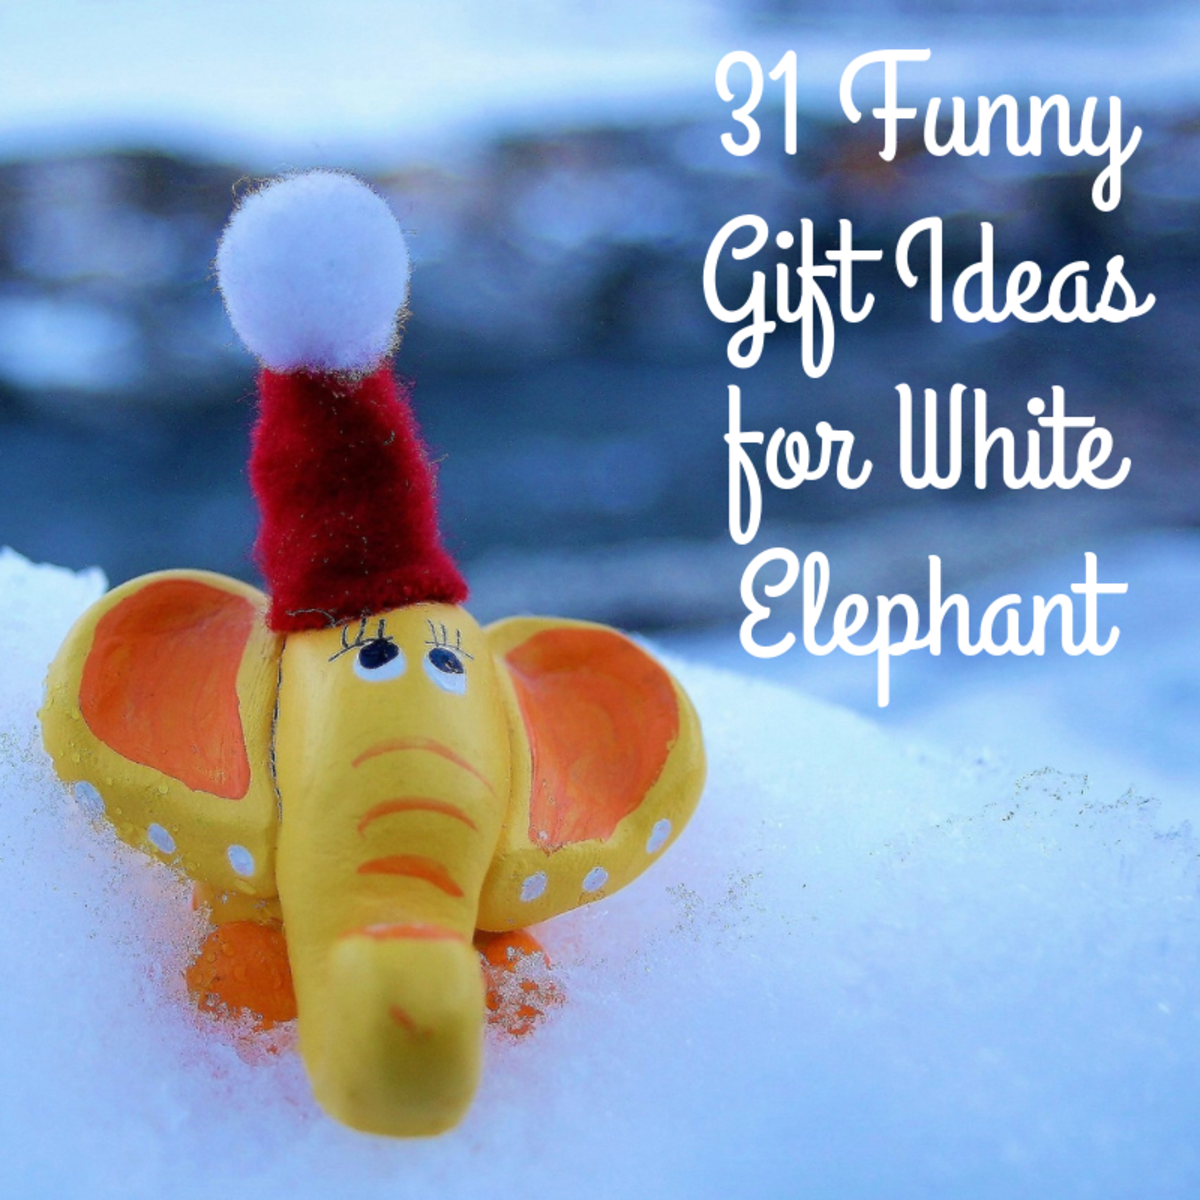 Here are 31 different fun and silly ideas for you to bring to your next white elephant gift exchange party.